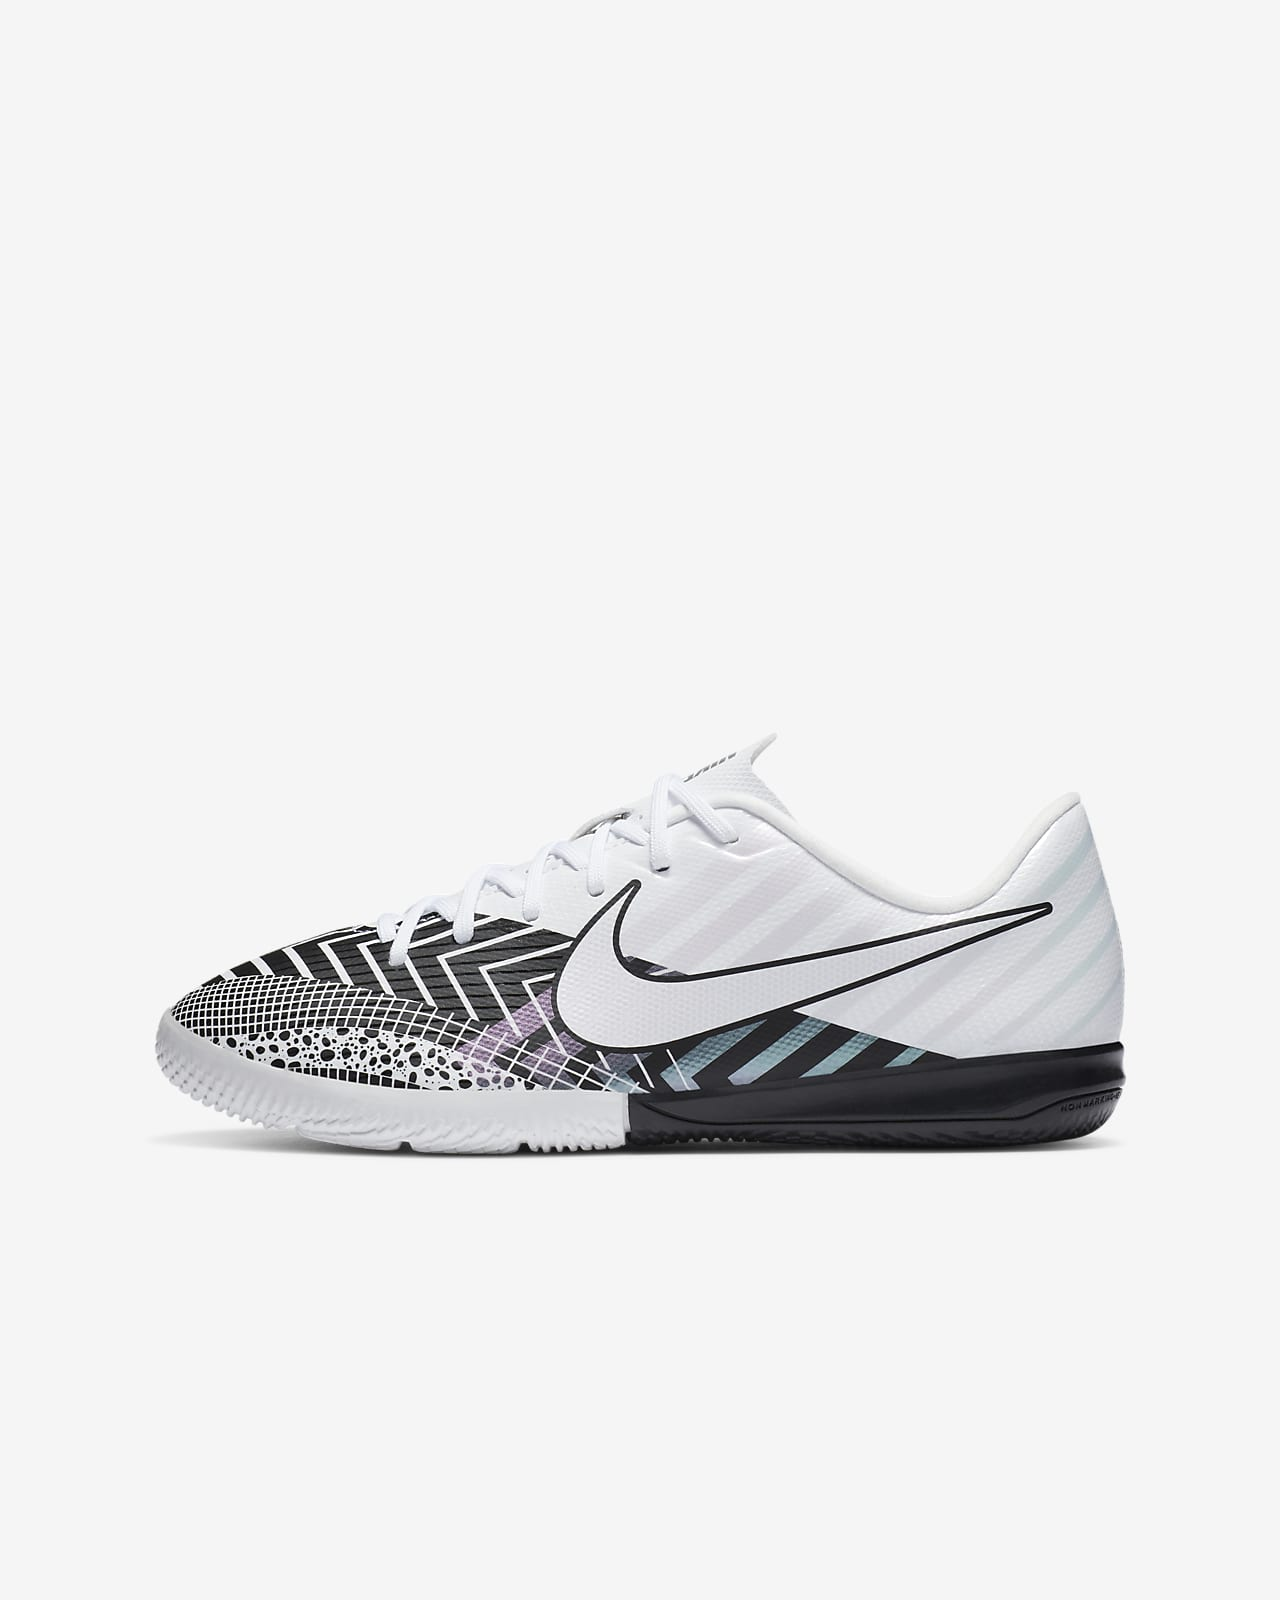 Nike Jr. Mercurial Vapor 13 Academy MDS IC Younger/Older Kids' Indoor Court Football Shoe